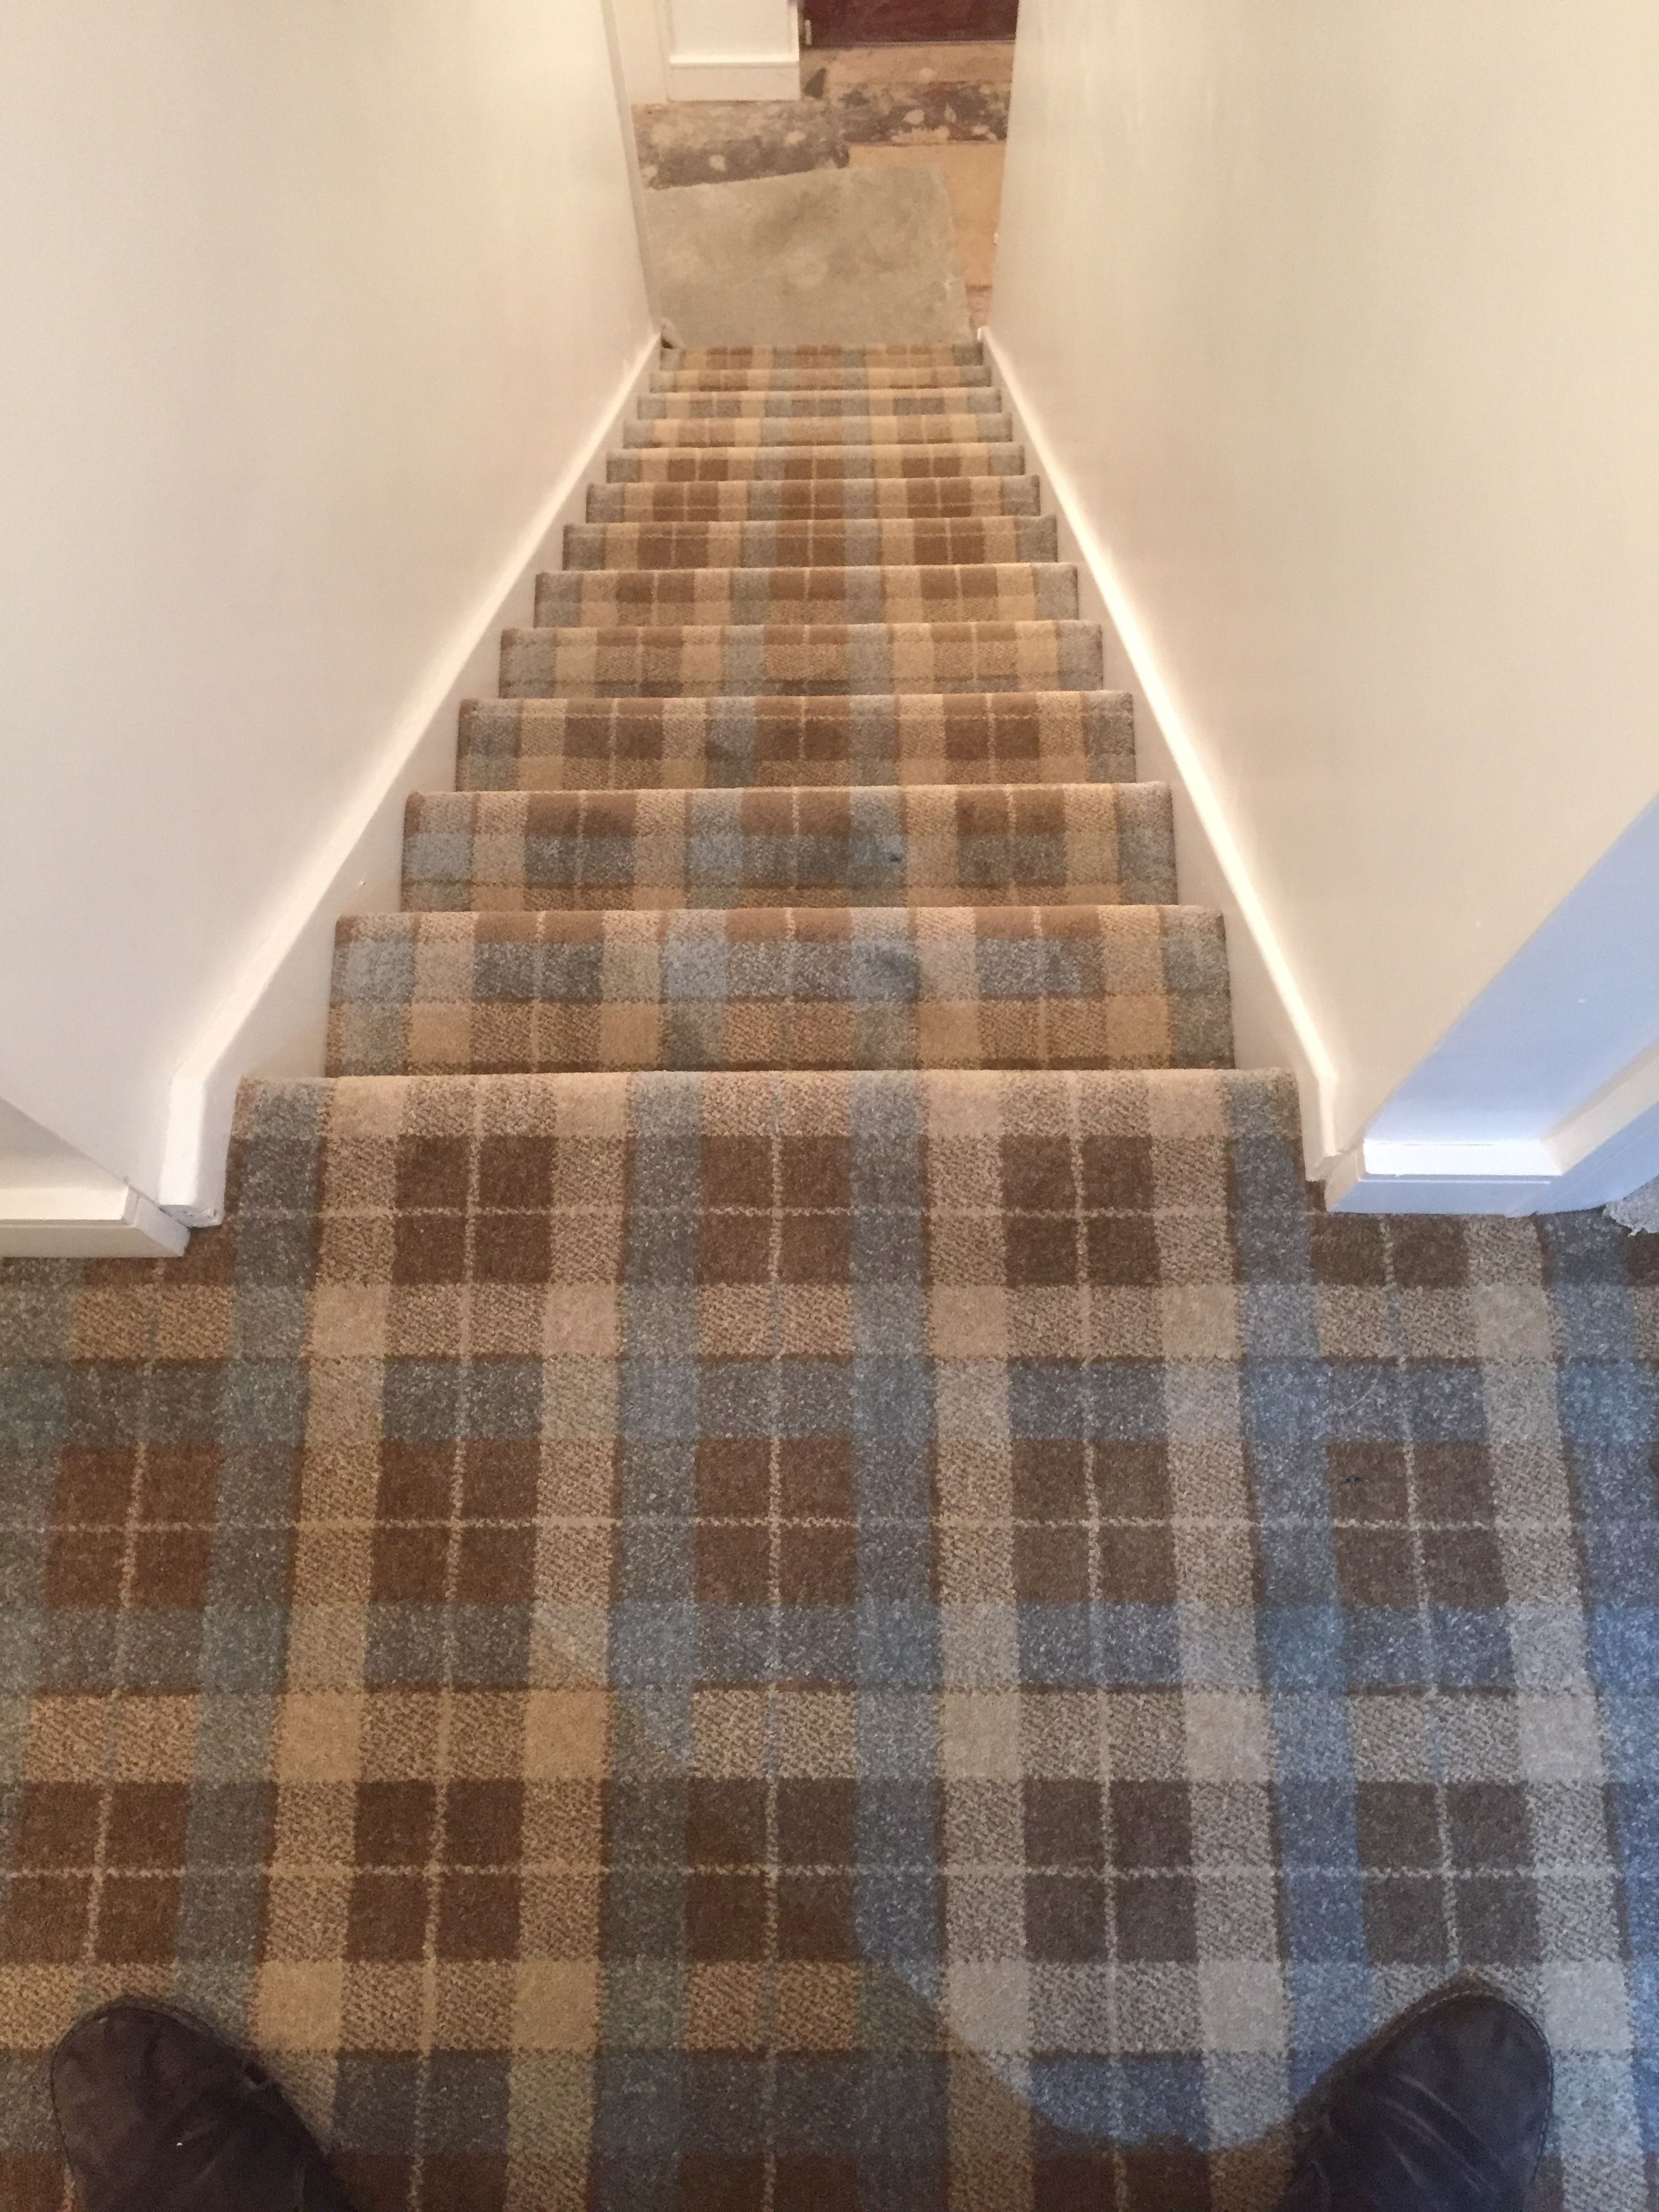 tartan carpet to stairs and landing carpets in 2019. Black Bedroom Furniture Sets. Home Design Ideas